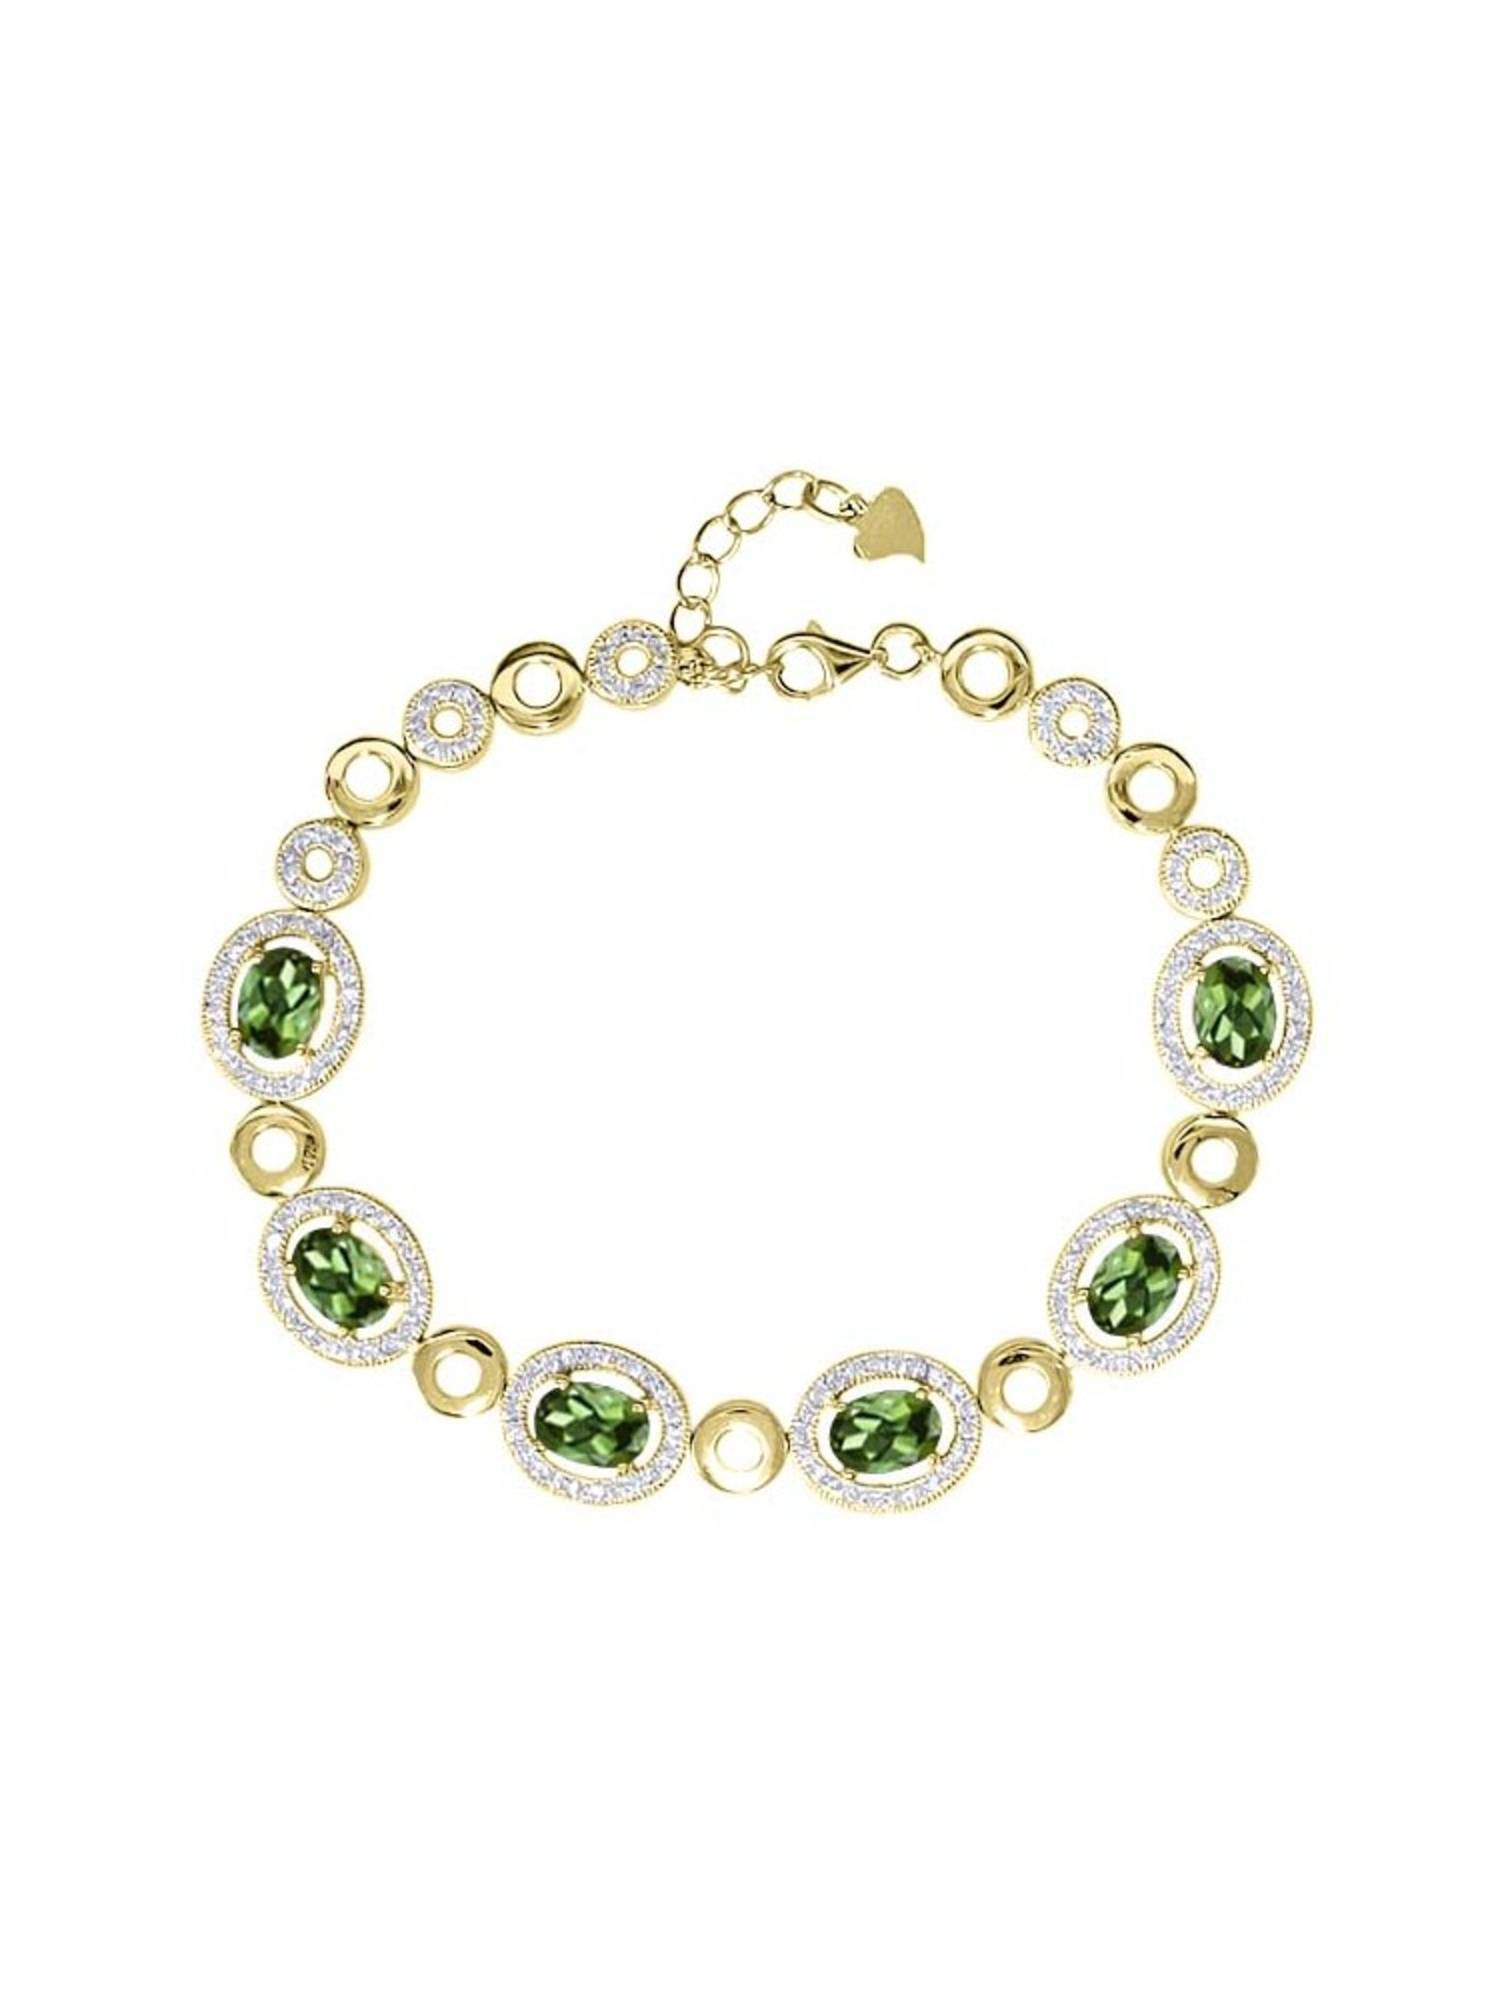 7.02 Ct Oval Green Tourmaline 18K Yellow Gold Plated Silver Bracelet by